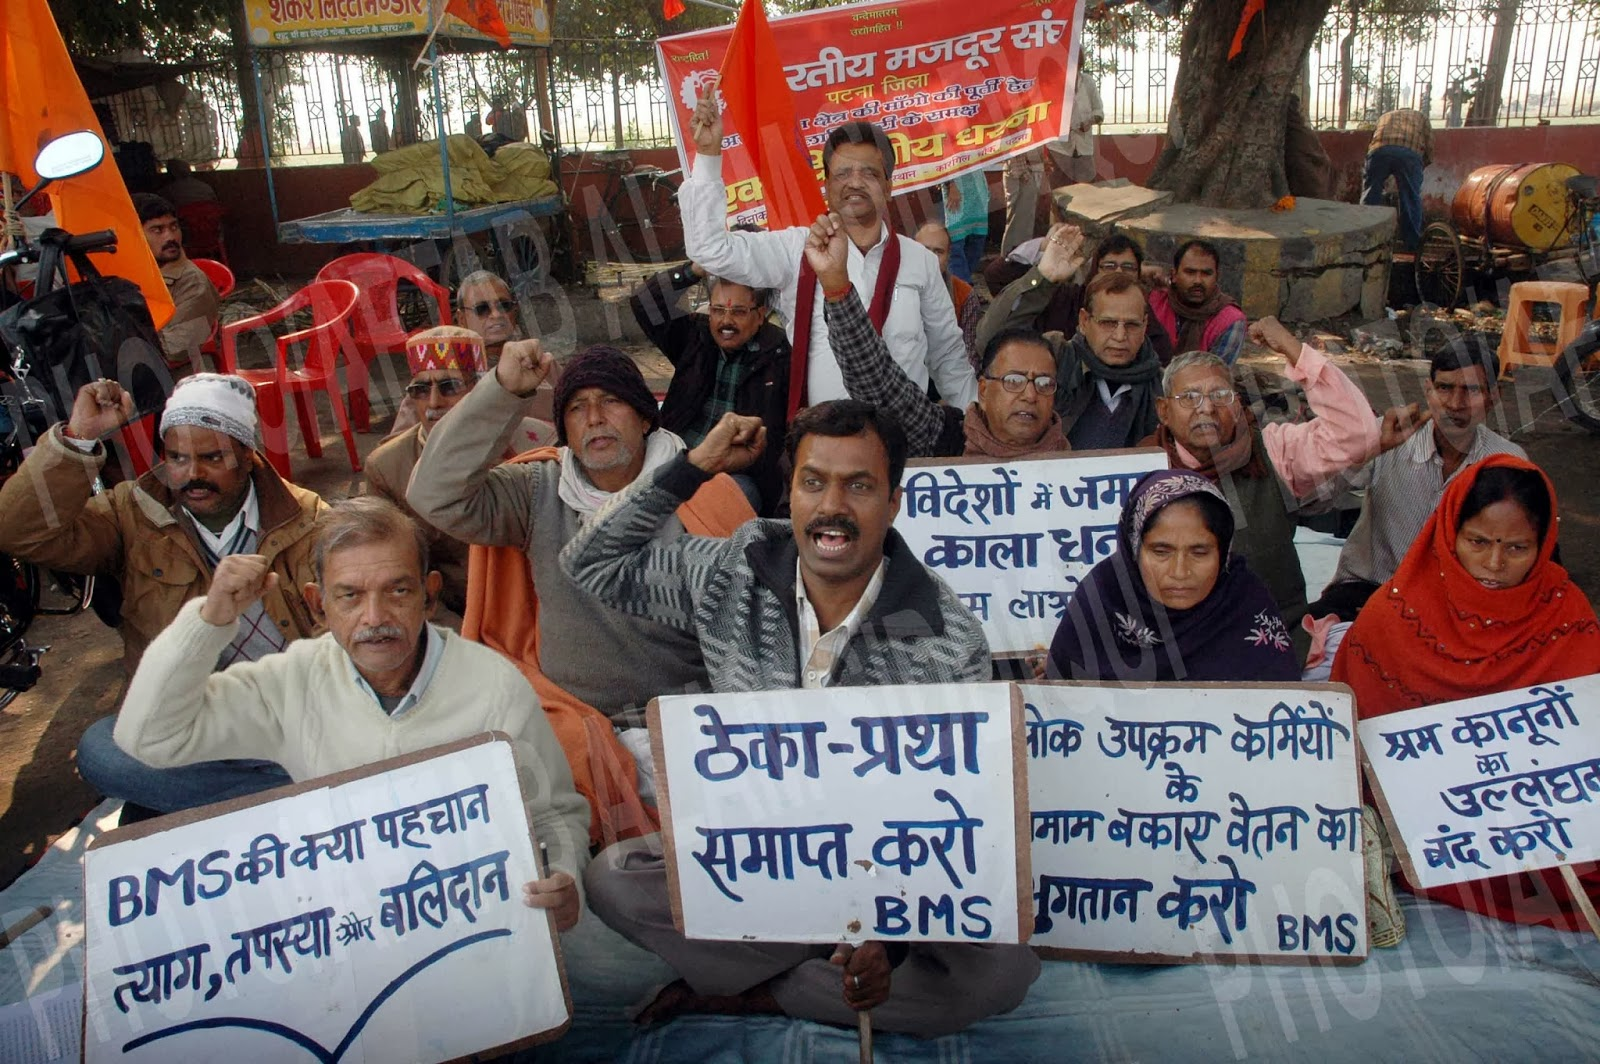 View Patna: BMS members stage dharna